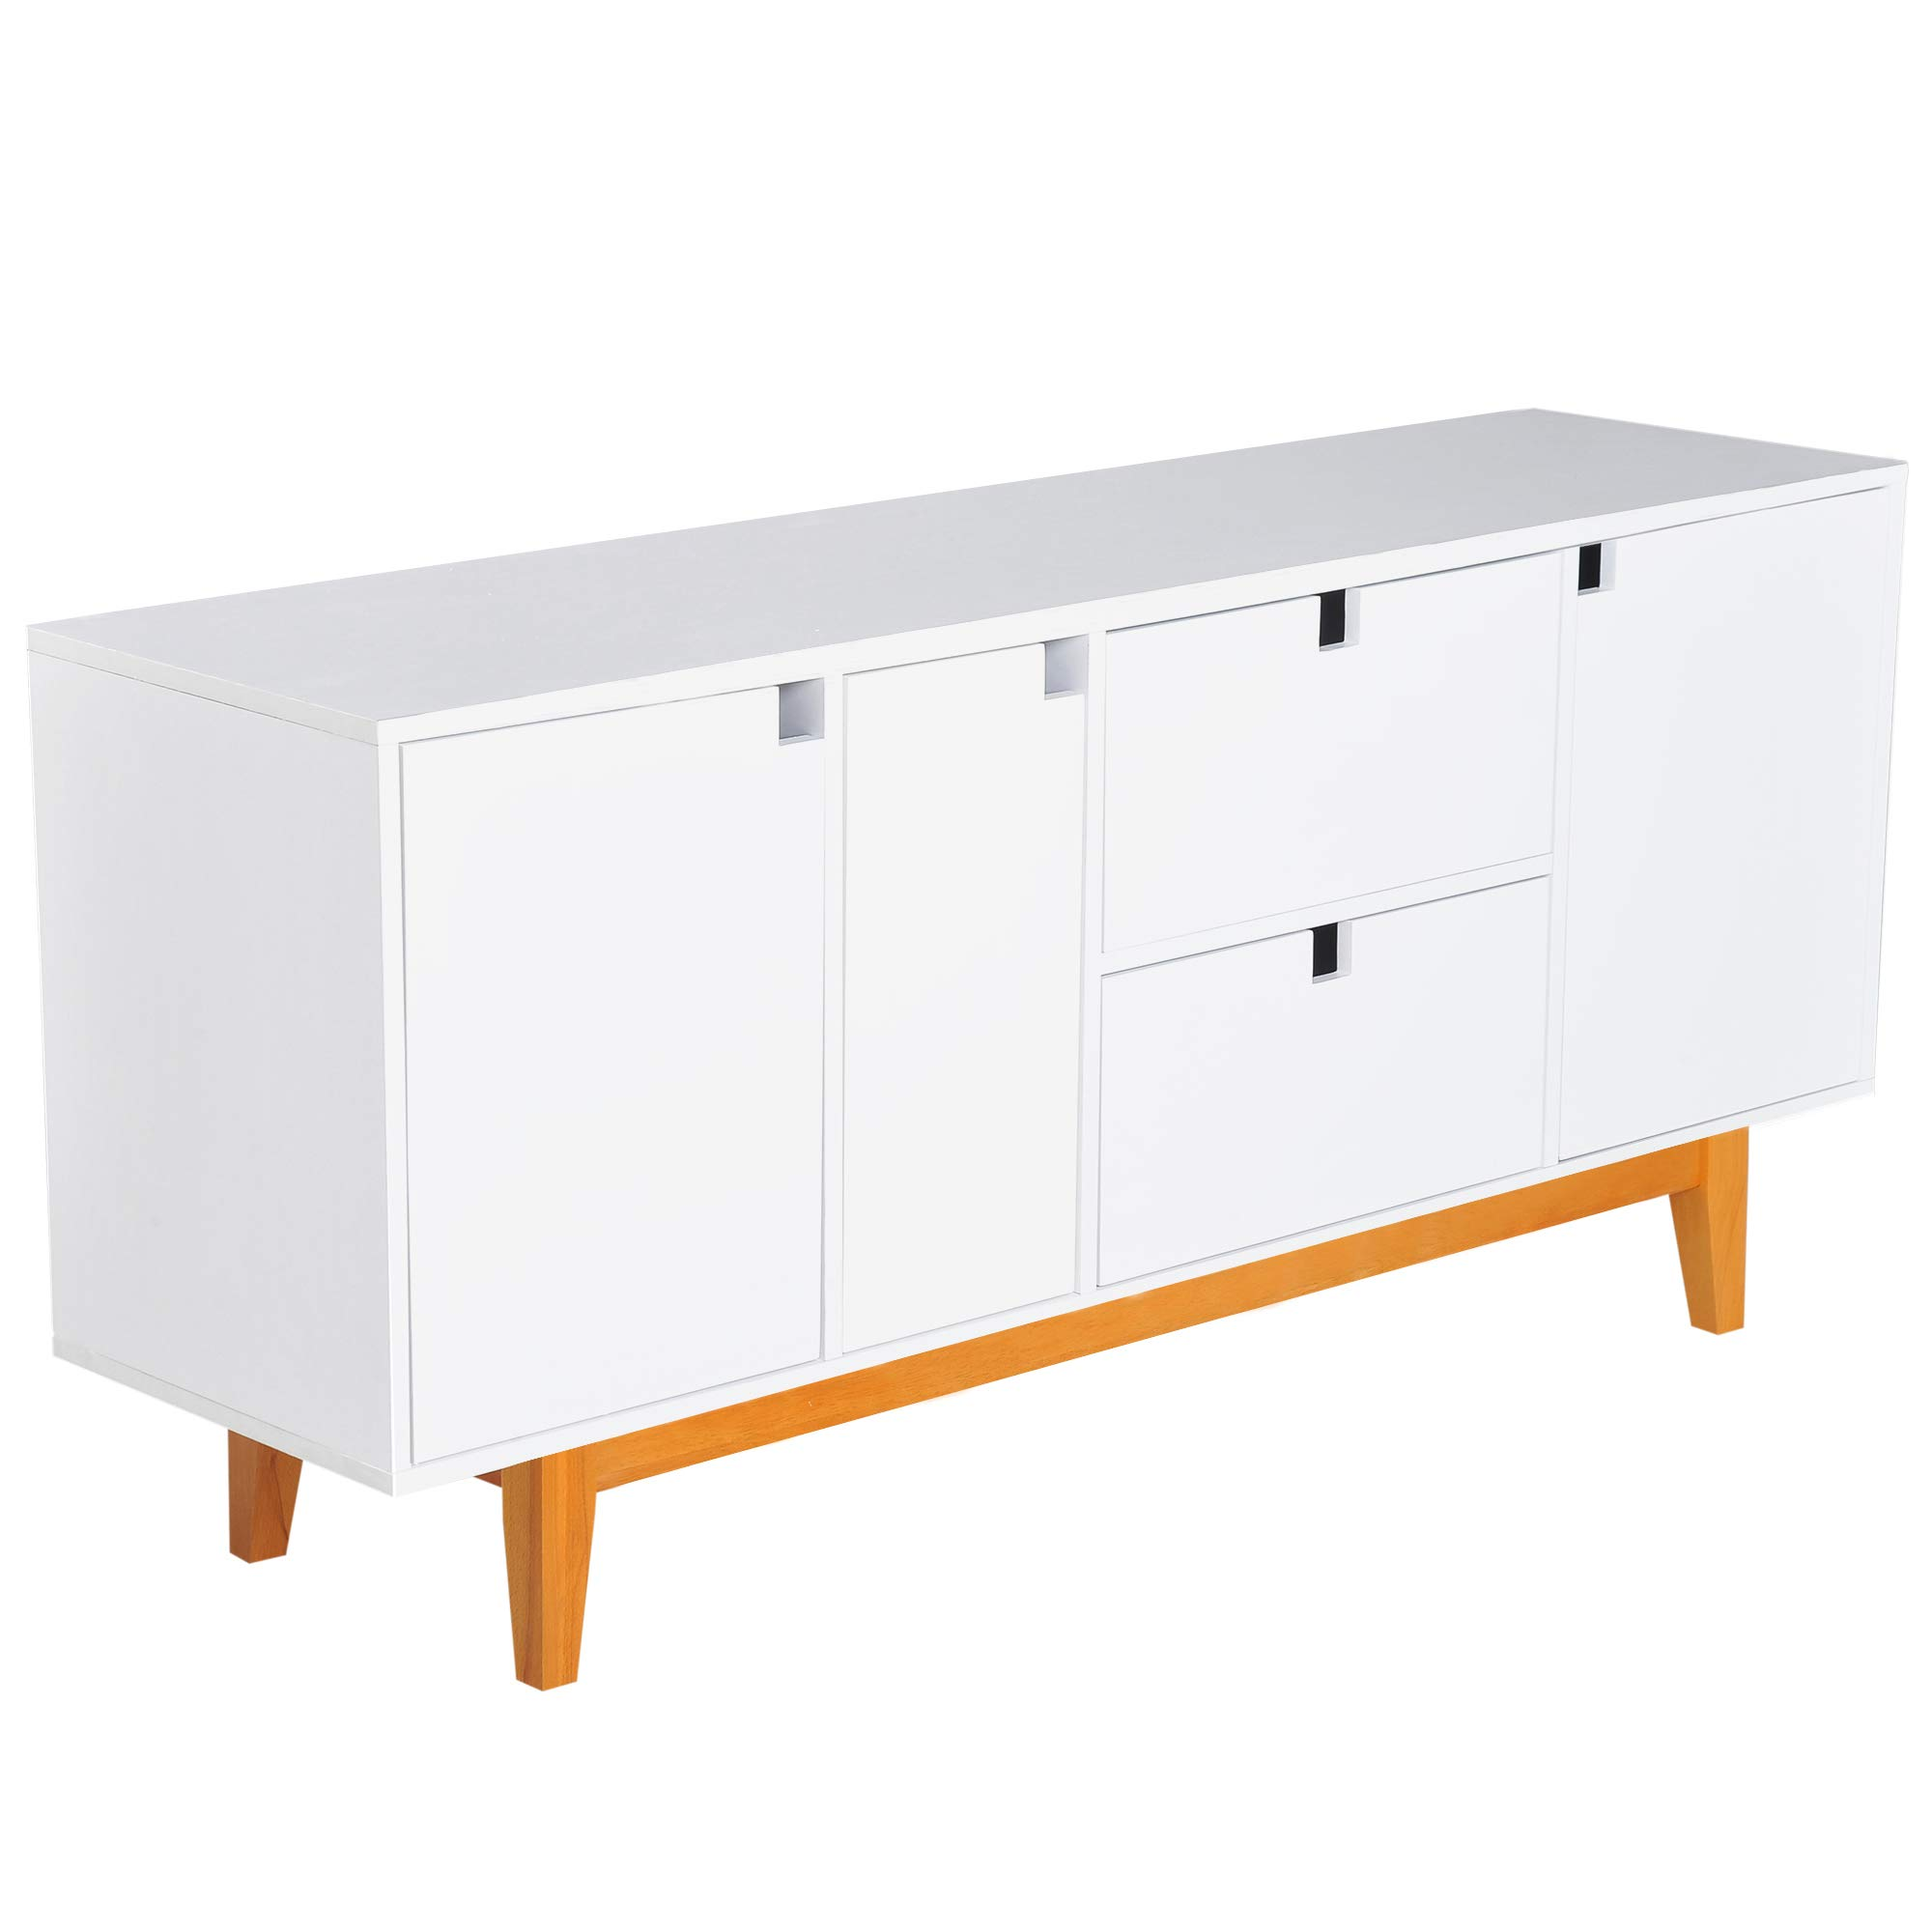 HOMCOM 57'' Two Tone Contemporary Sideboard Buffet Table Storage Cabinet - White by HOMCOM